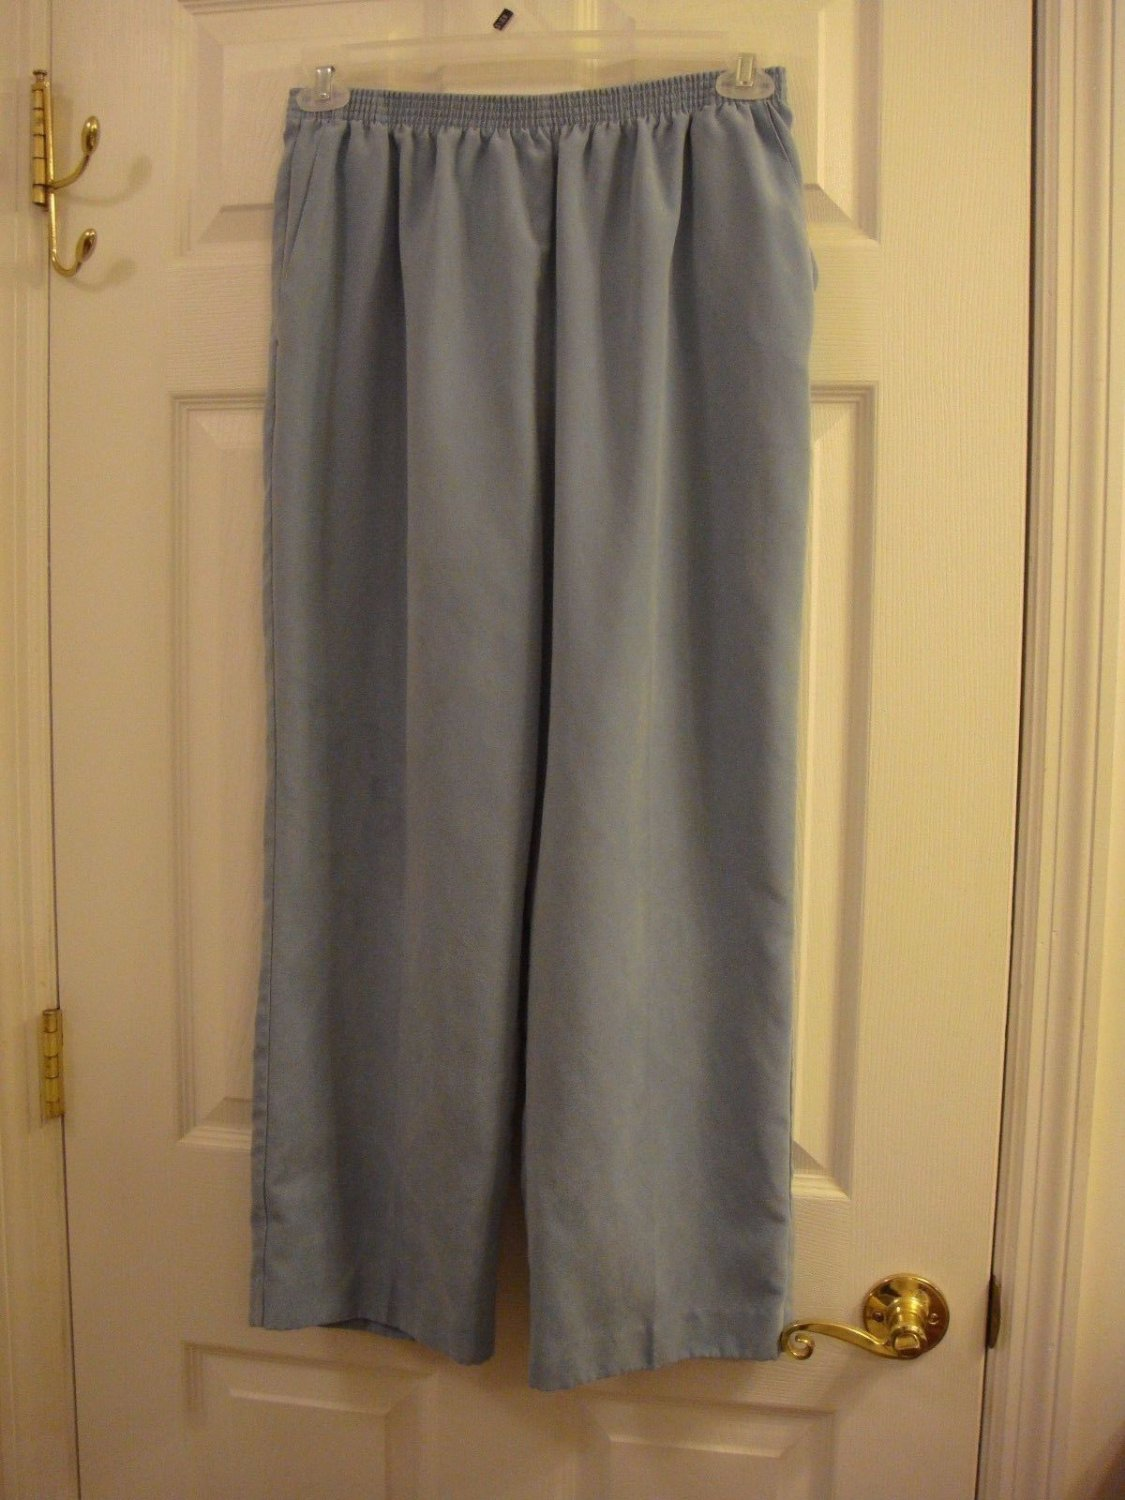 ALFRED DUNNER WOMEN'S SIZE 24W PANTS PLUSH POWDER BLUE HIGH RISE ELASTIC WAIST SLACKS OFFICE DRESS